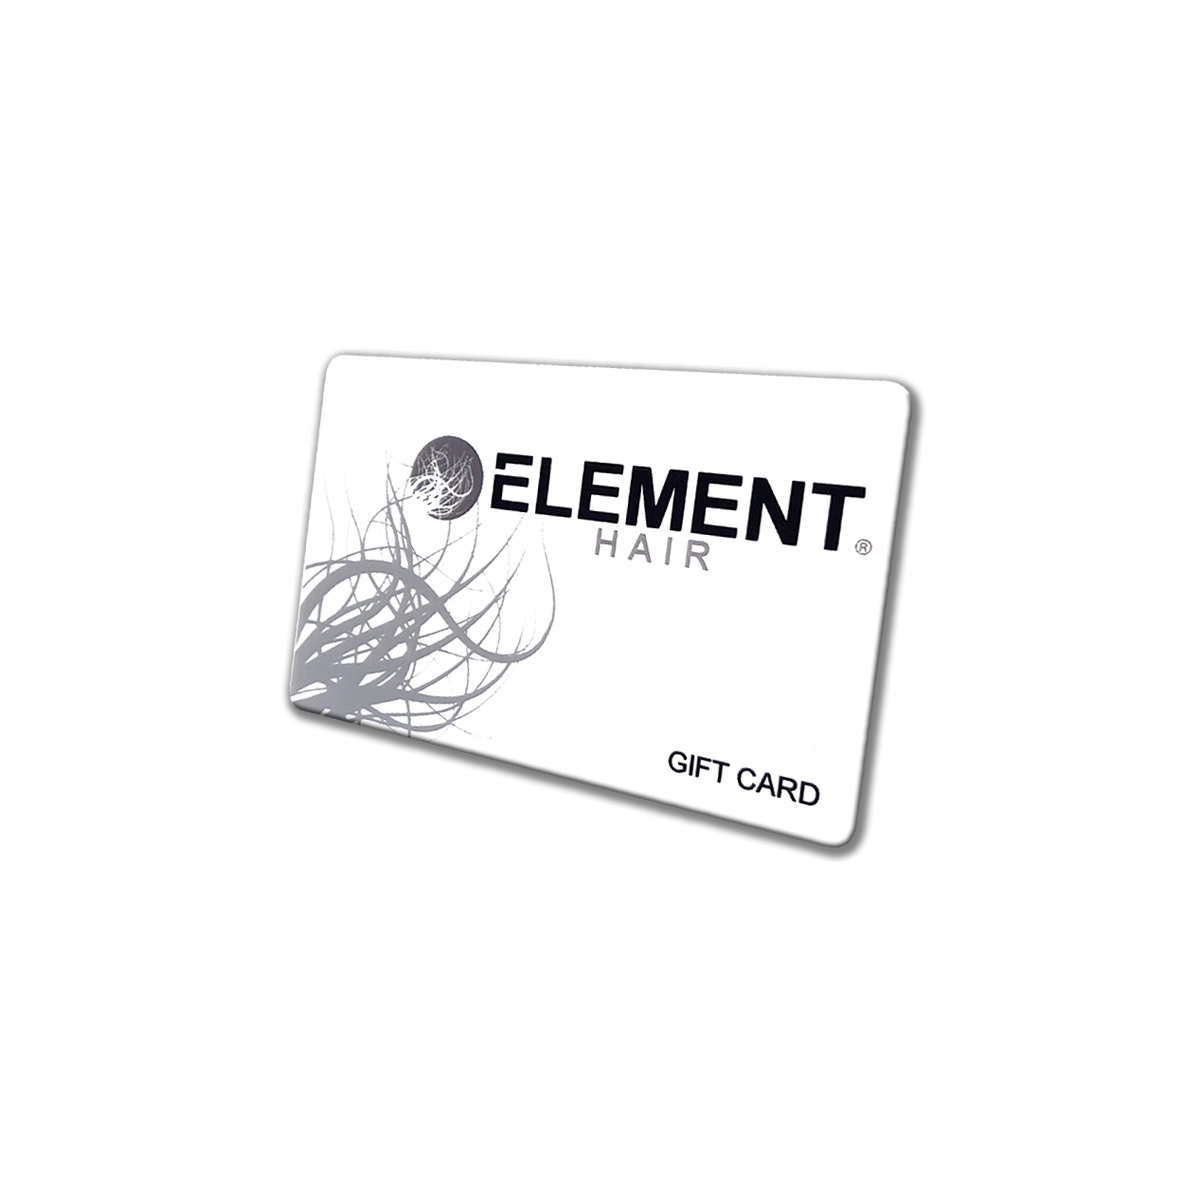 Gift cards available at Element Hair